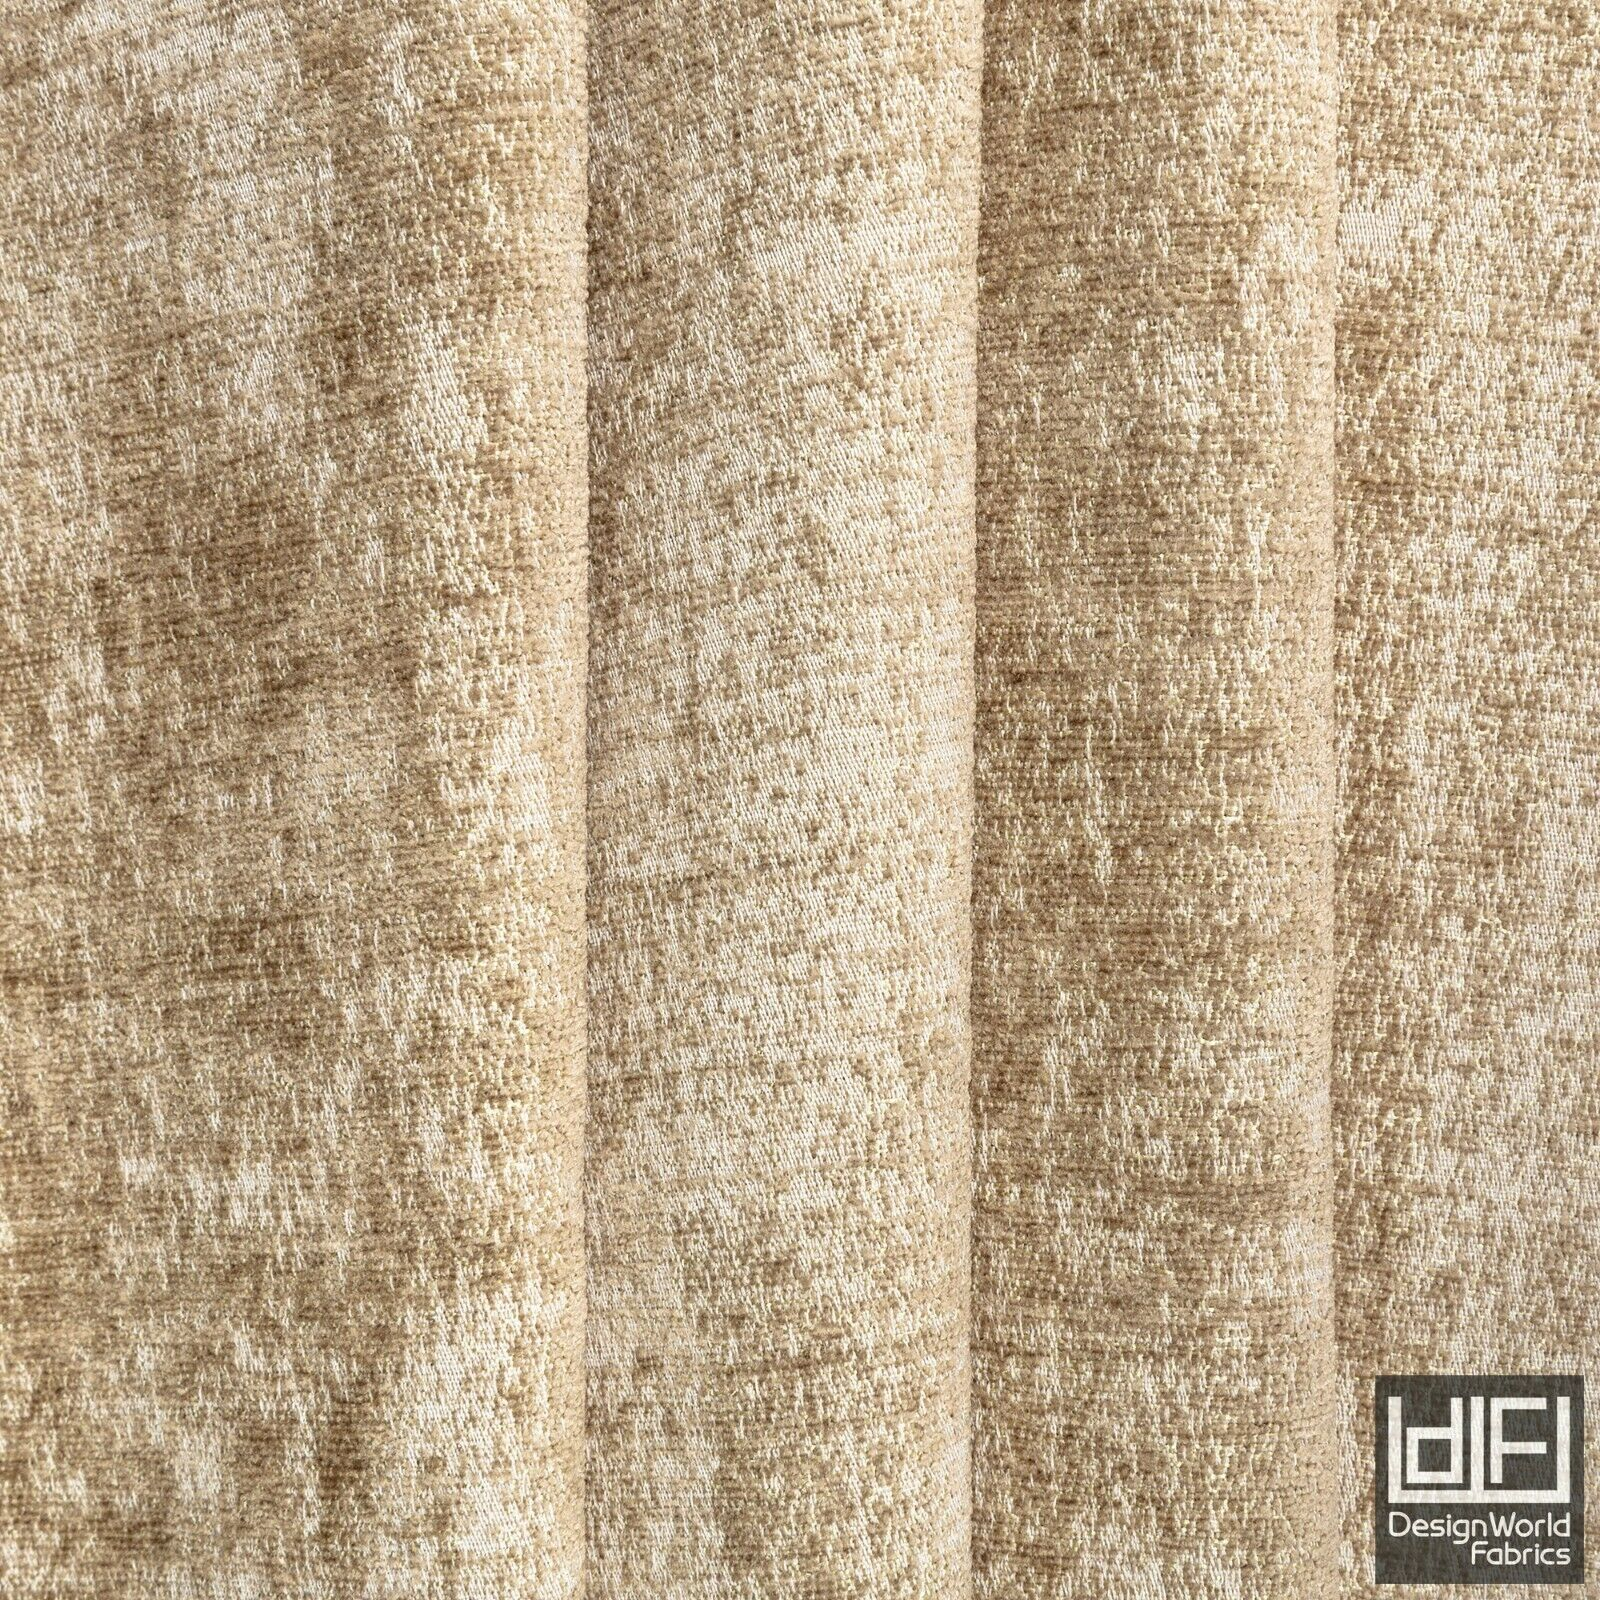 Sand Beige Curtain Fabric Textured Plain Chenille Soft Cushion Blind Material